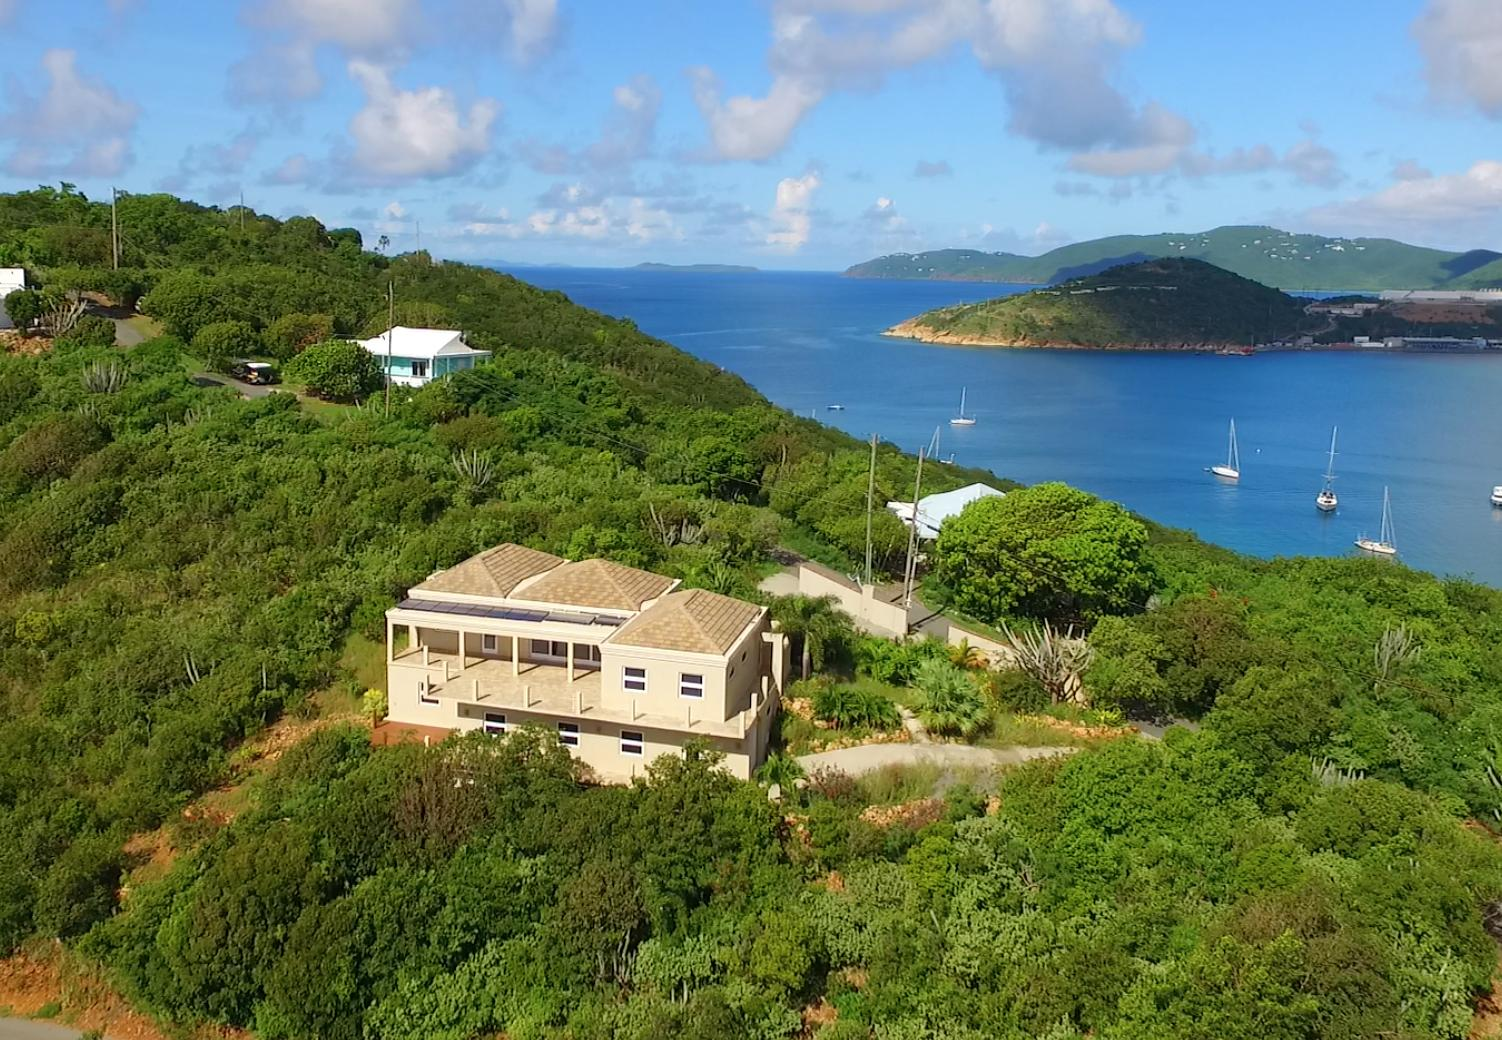 Single Family Home for Sale at 93 Water Island SS 93 Water Island SS St Thomas, Virgin Islands 00802 United States Virgin Islands